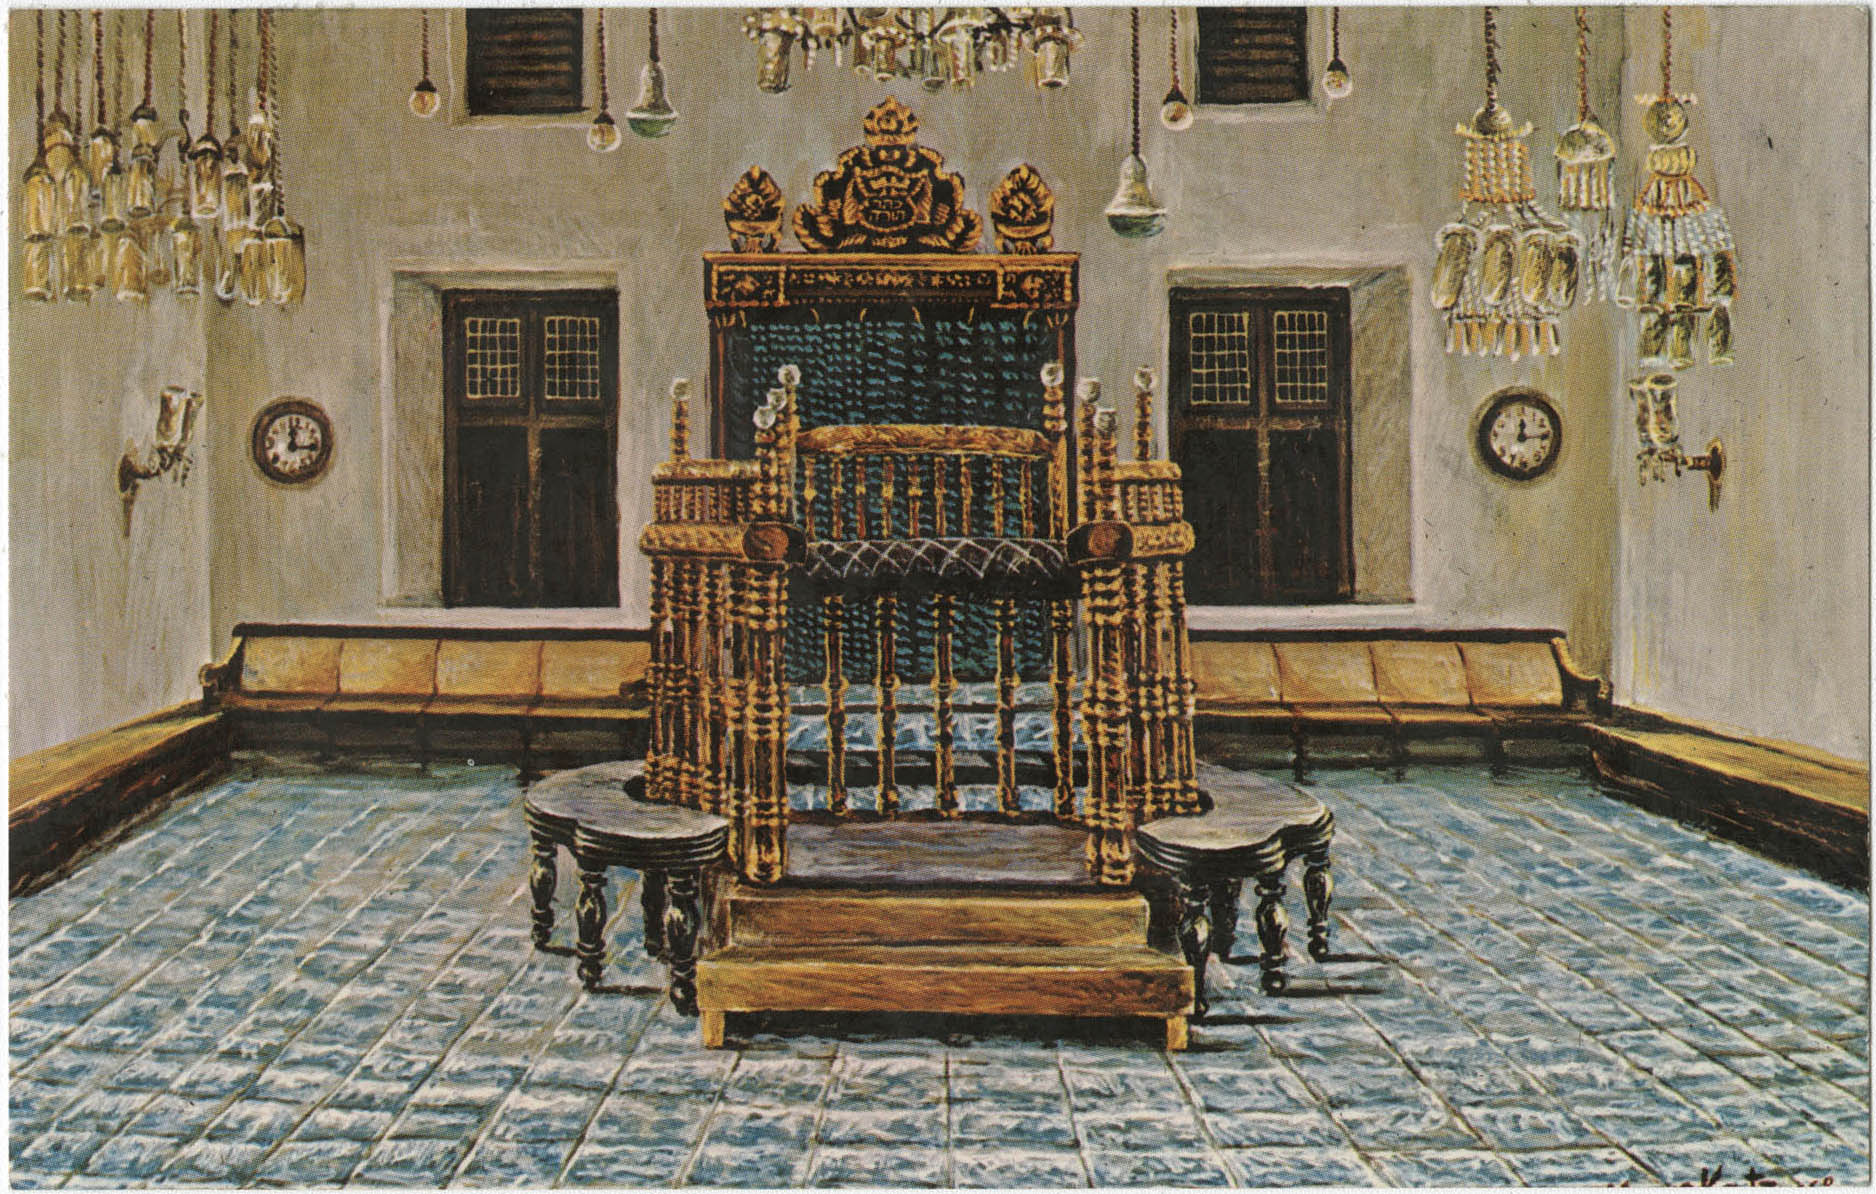 Paradesi Synagogue located in